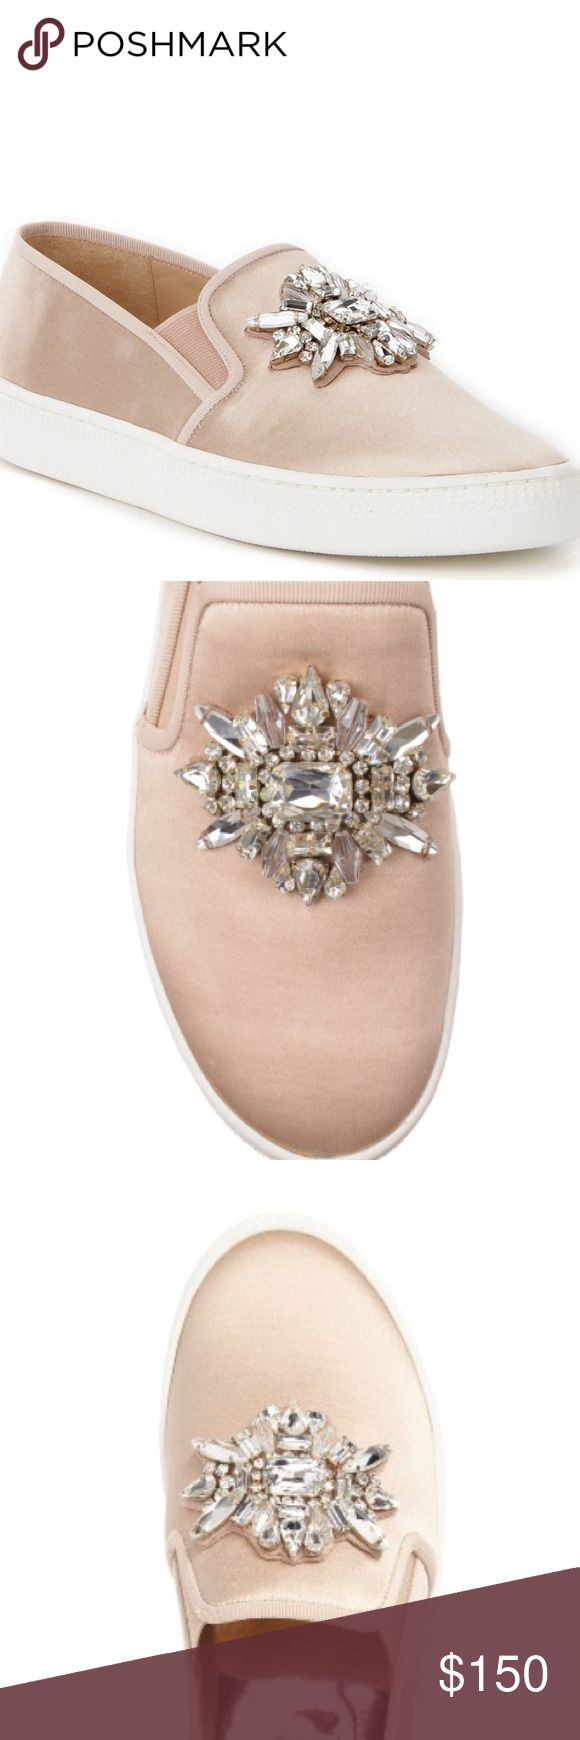 BADGLEY MISCHKA JEWEL EMBELLISHED SLIP ON SNEAKER Brand new in box, latte satin color, logo on sole, crystal jewel embellished. Badgley Mischka Shoes Sneakers